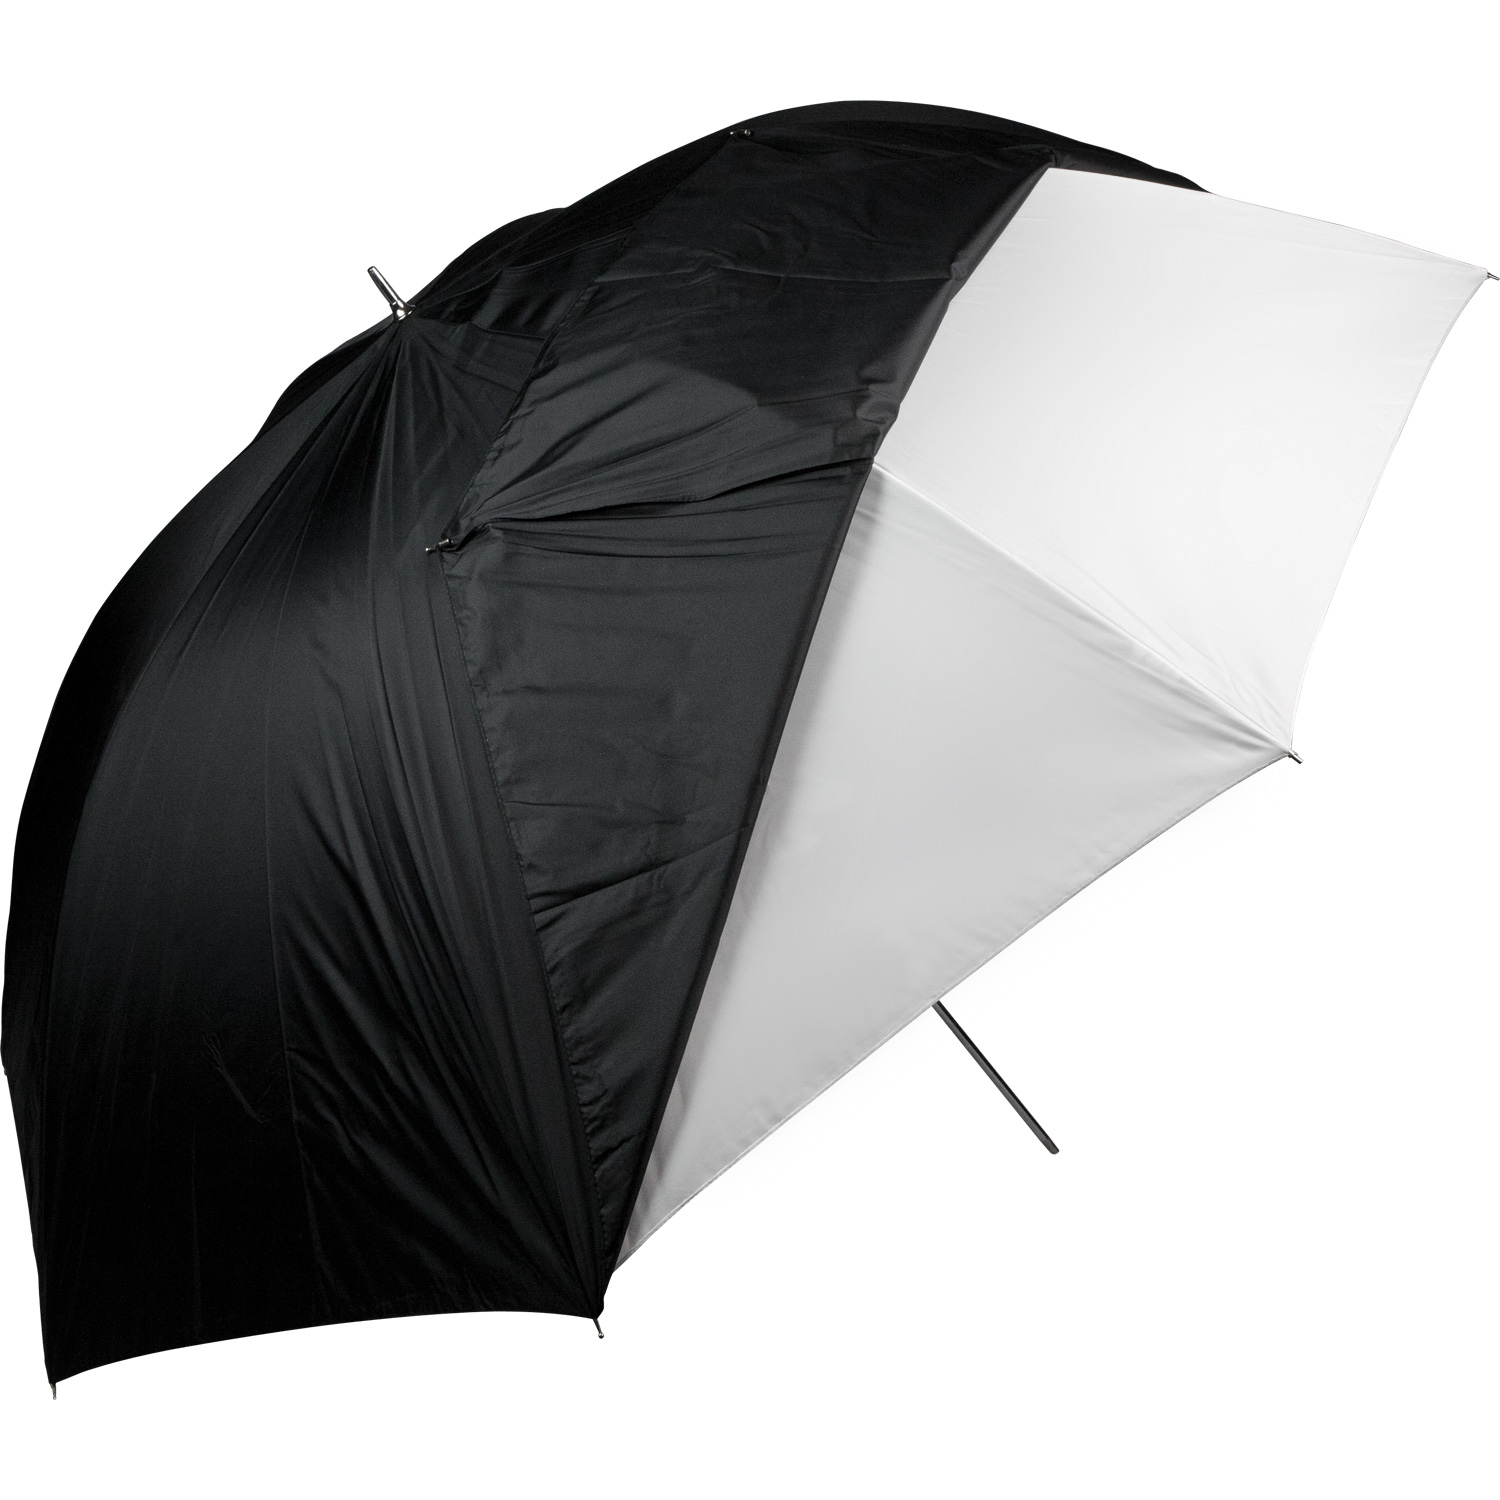 60-in. White Satin Umbrella with Removable Black Cover